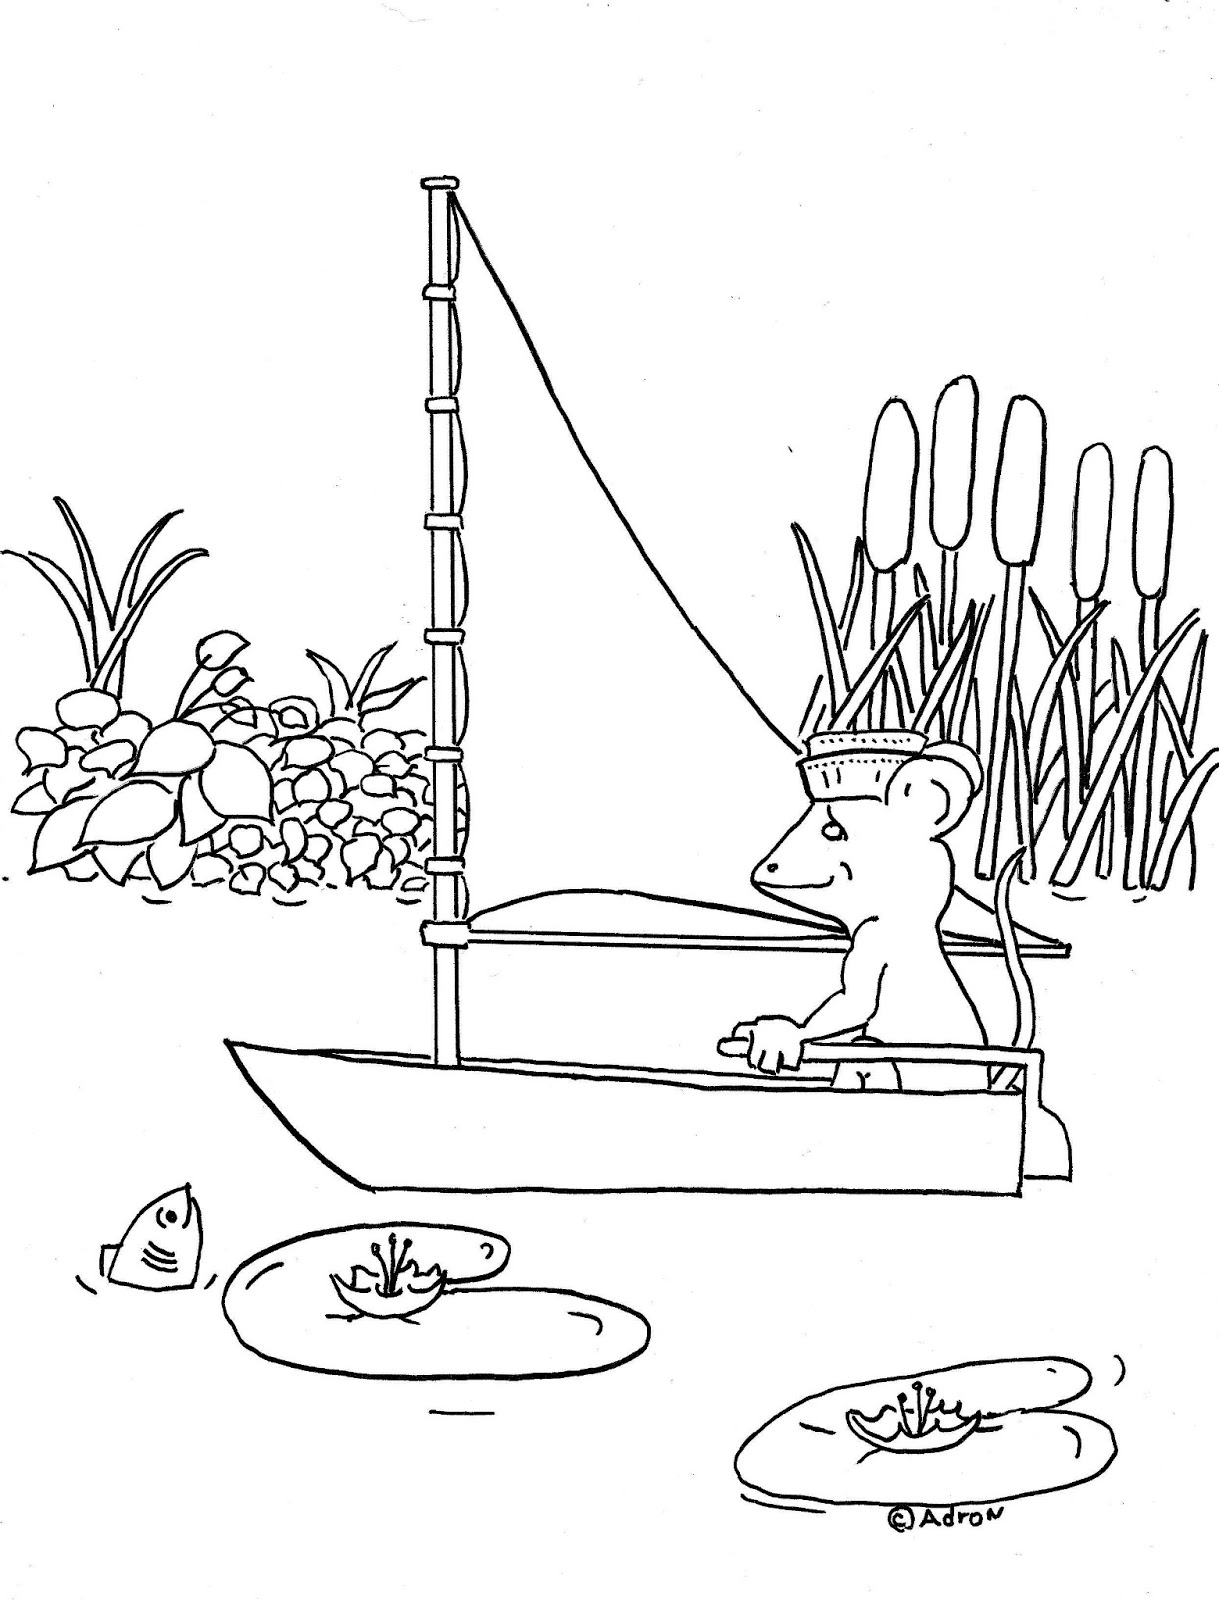 Coloring Pages For Kids By Mr Adron Mouse In Boat Kid S